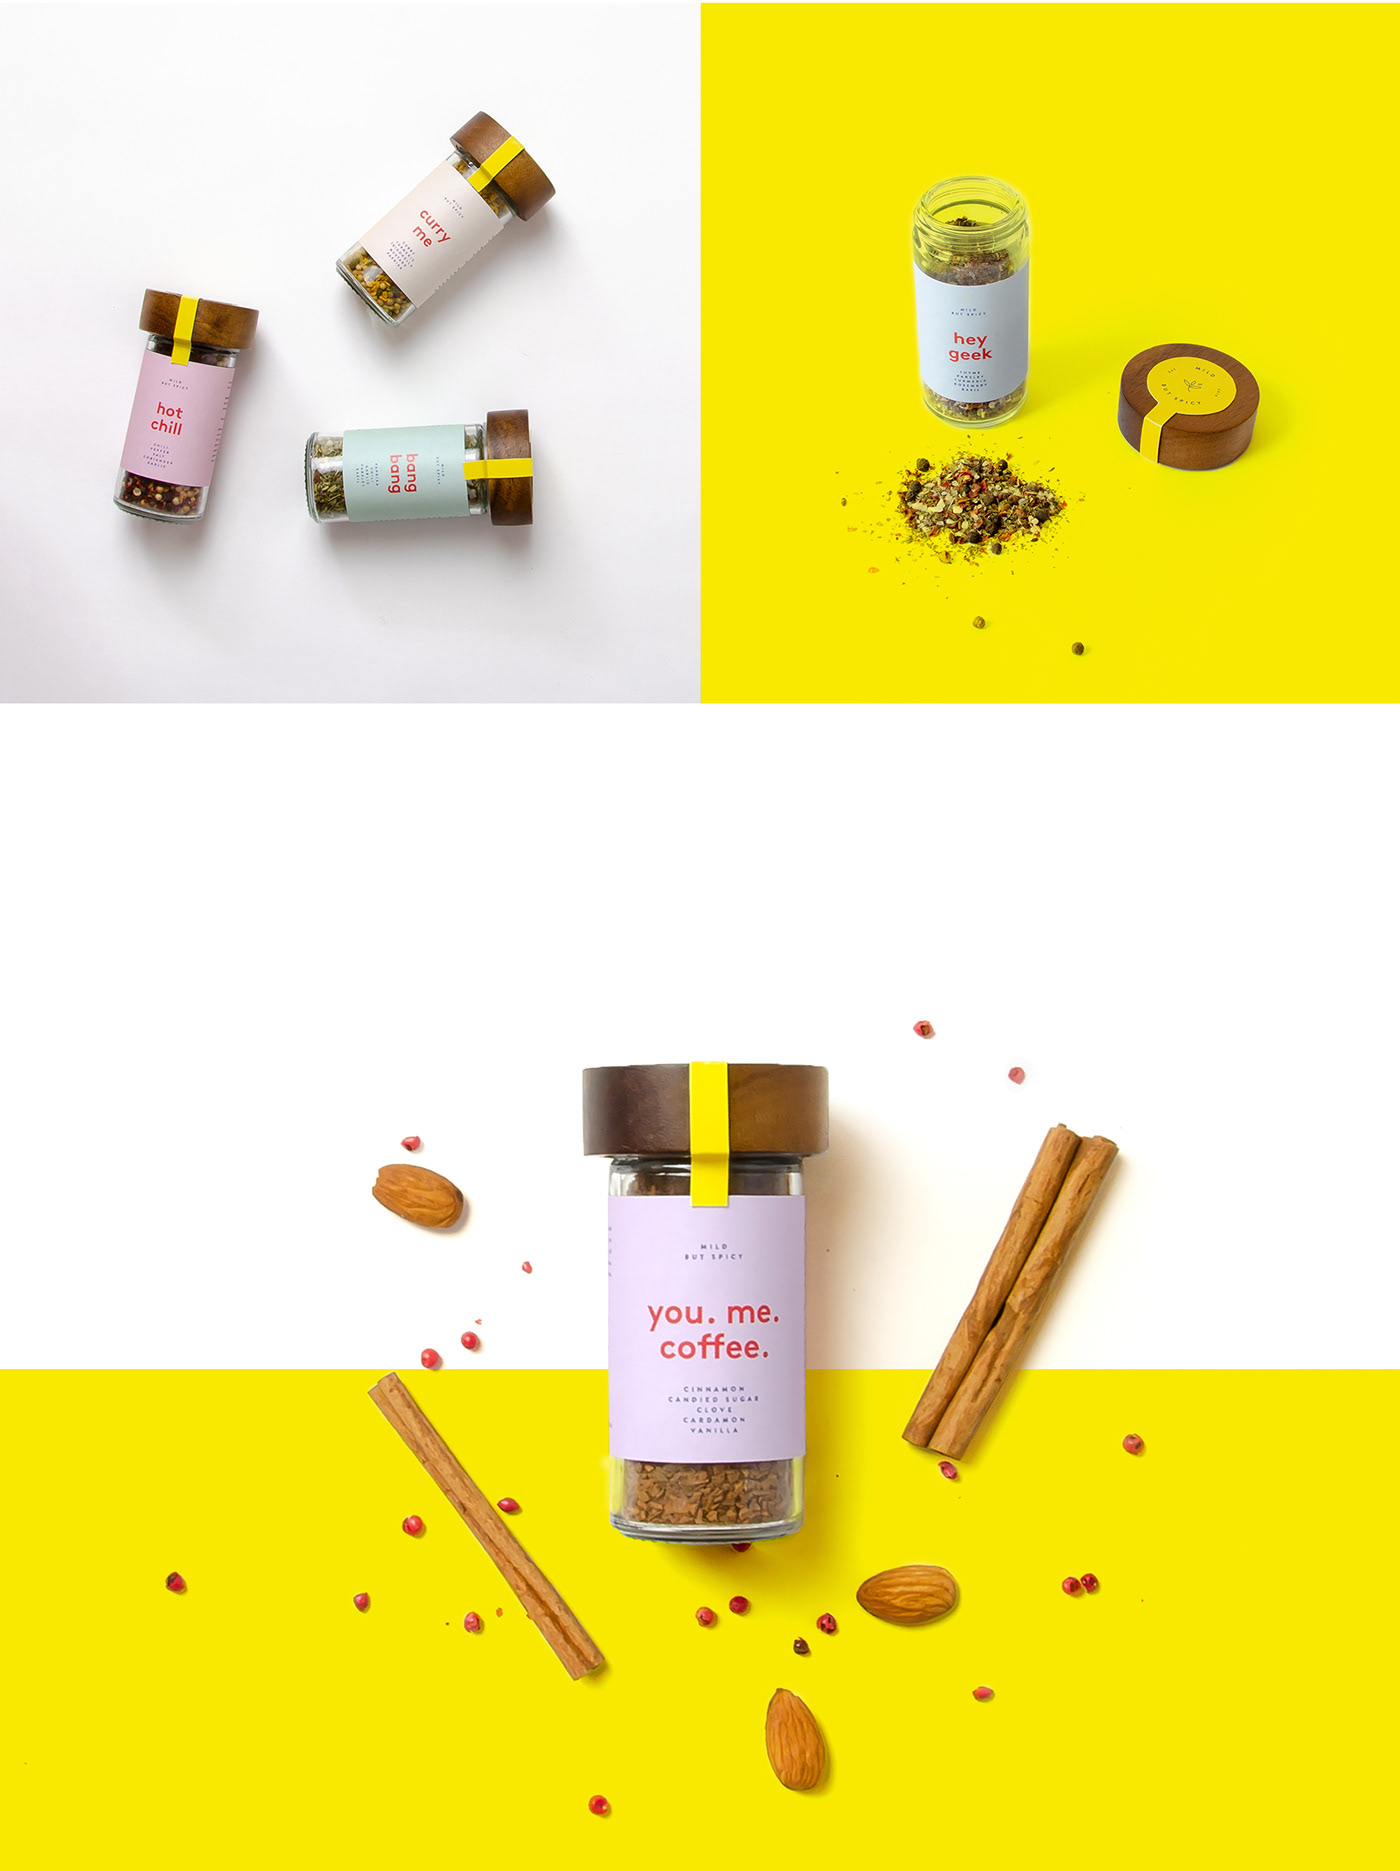 Mild but Spicy – branding and packaging